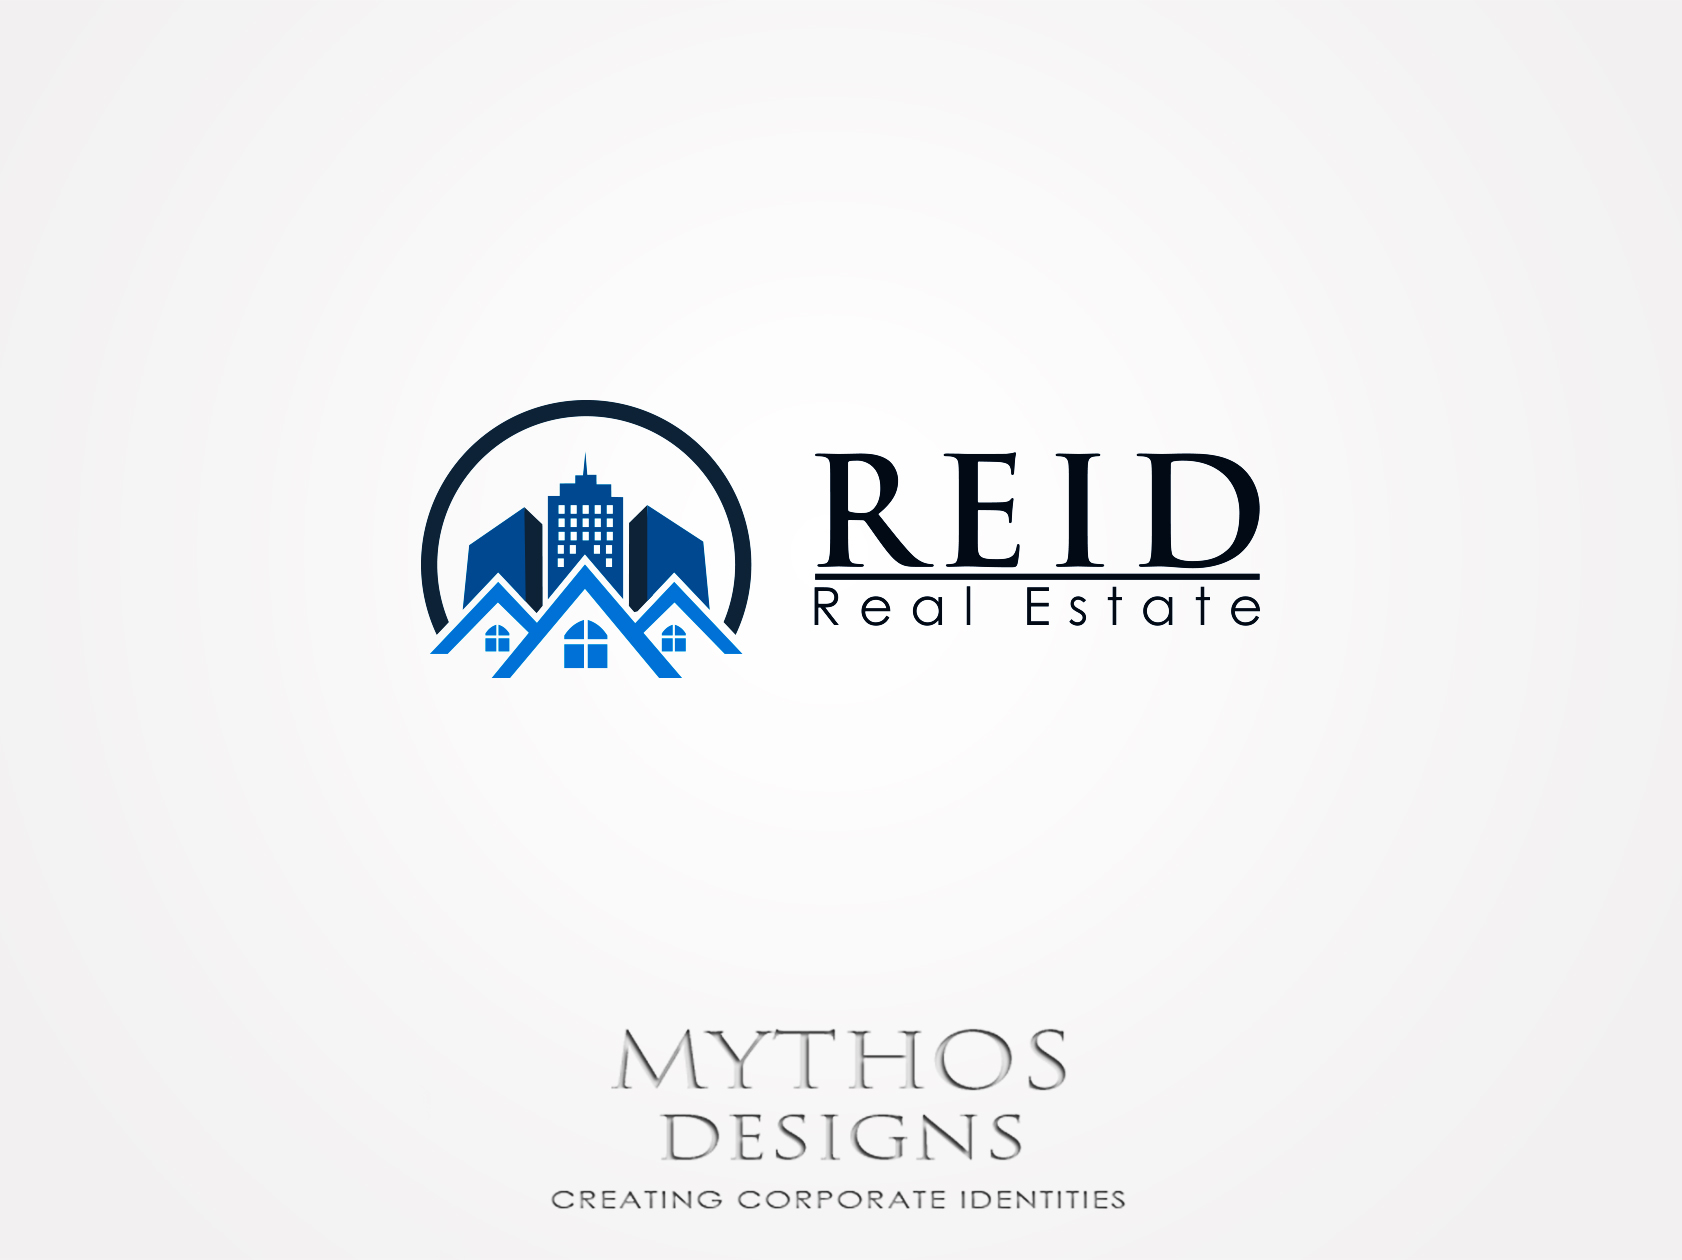 Logo Design by Mythos Designs - Entry No. 16 in the Logo Design Contest Artistic Logo Design for Hadden Properties.